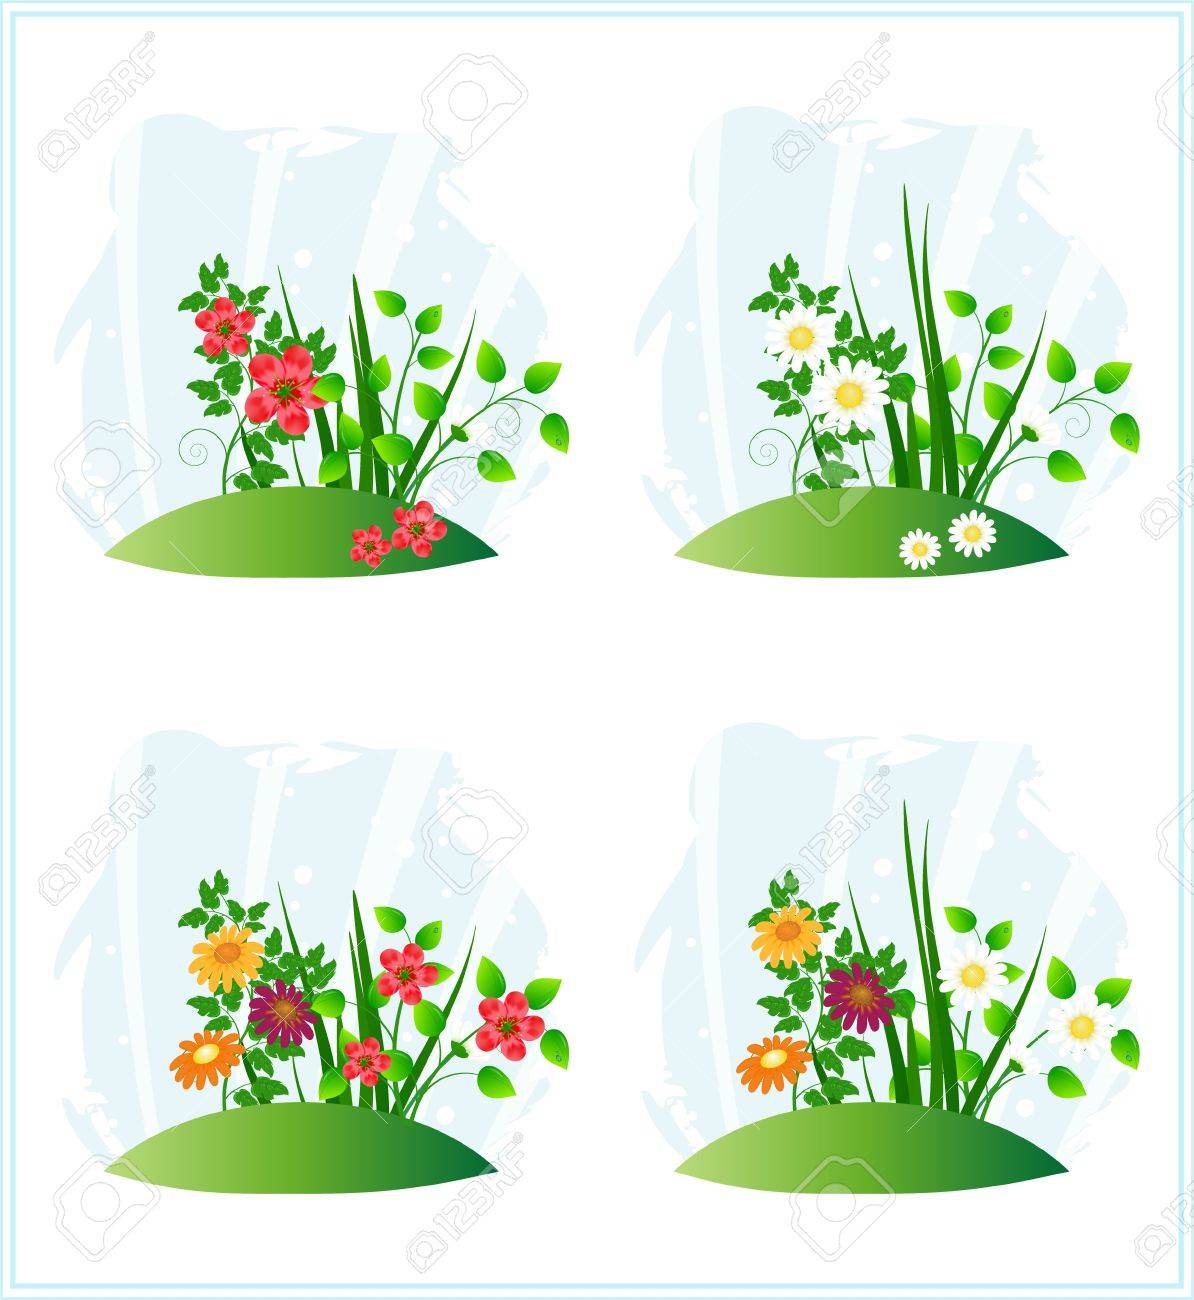 Nature scenes with flowers Stock Vector - 9892817